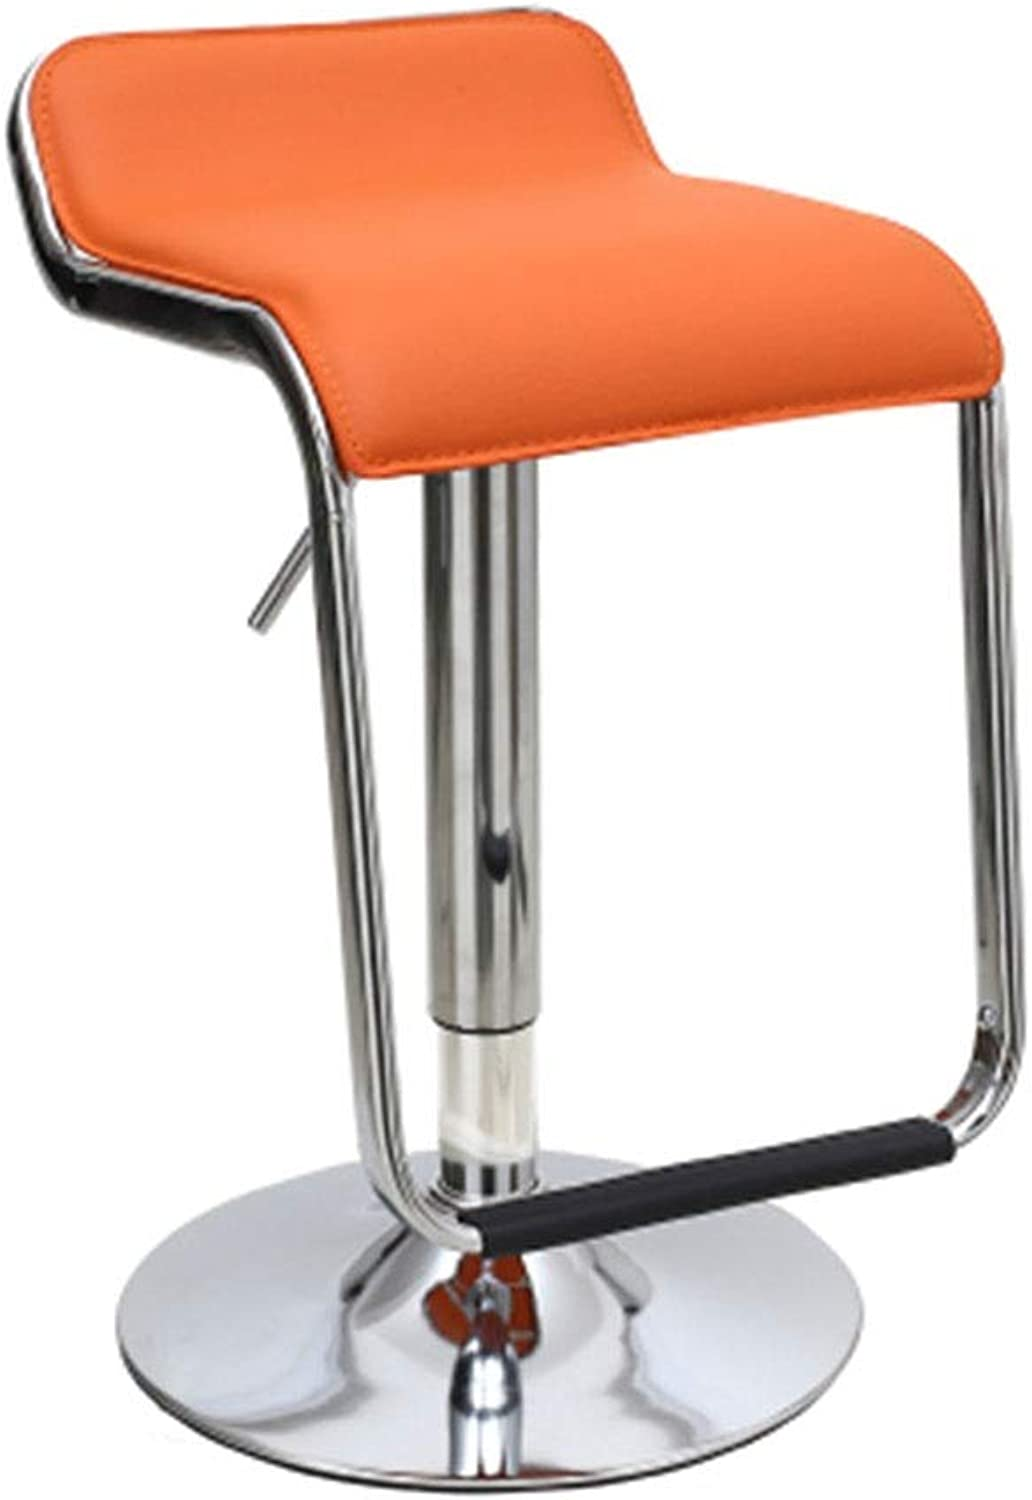 Bar Chair Simple High Stool Front Stool Lifting redate Creative 11 colors 1 Size (color   I)